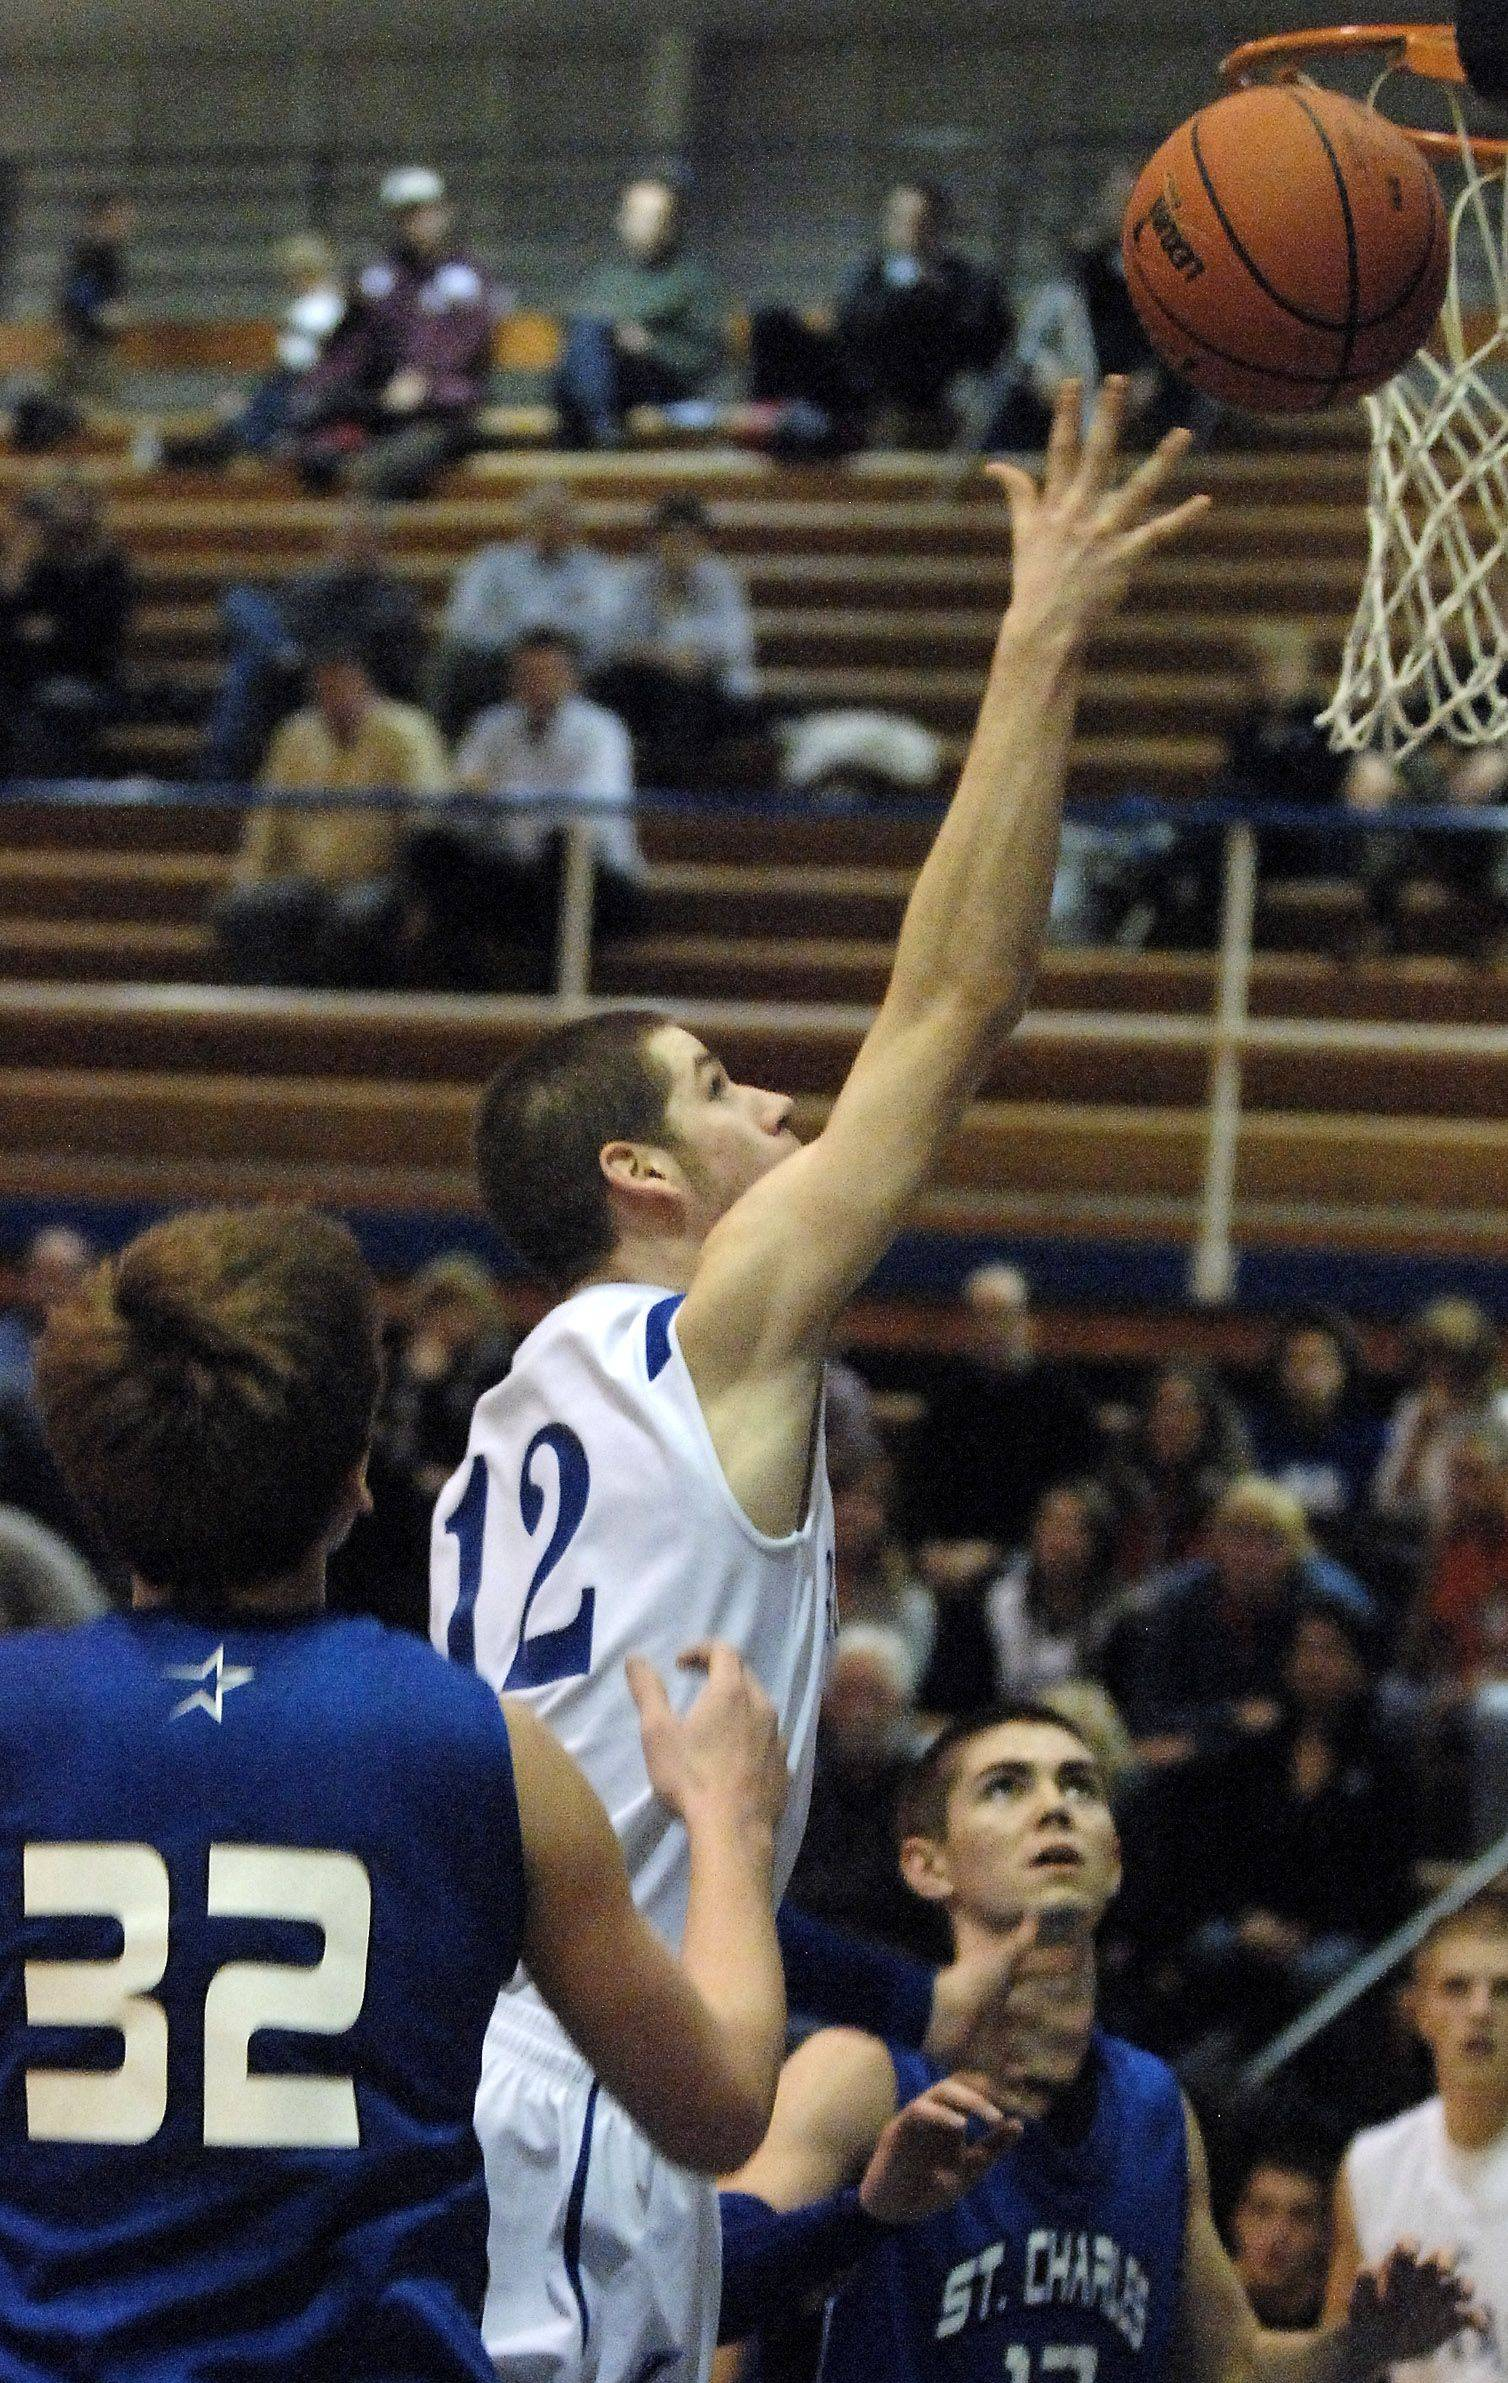 Larkin's Ian Fluhler goes to the rim against St. Charles North.